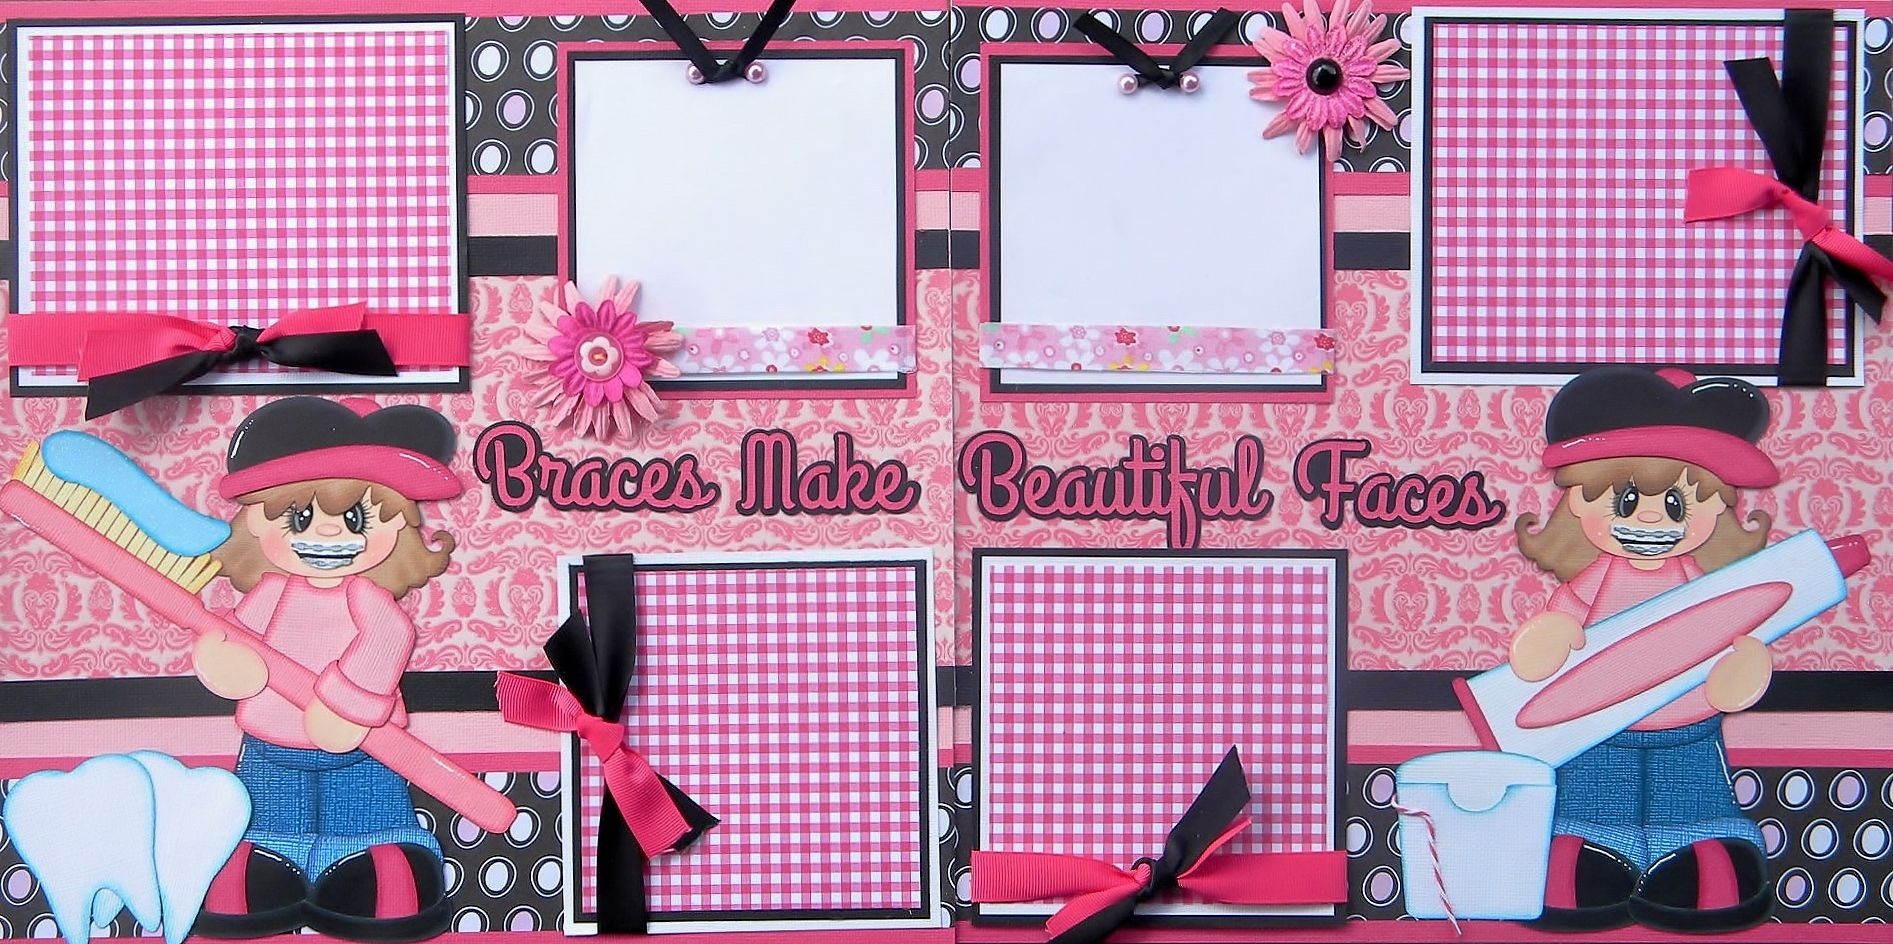 How to make scrapbook in facebook - My Newest Layout Using Braces Make Beautiful Faces And Tt Becky Https Www Facebook Com Scrapbookinmomma Ref Hl Pinterest Beautiful Braces And Faces